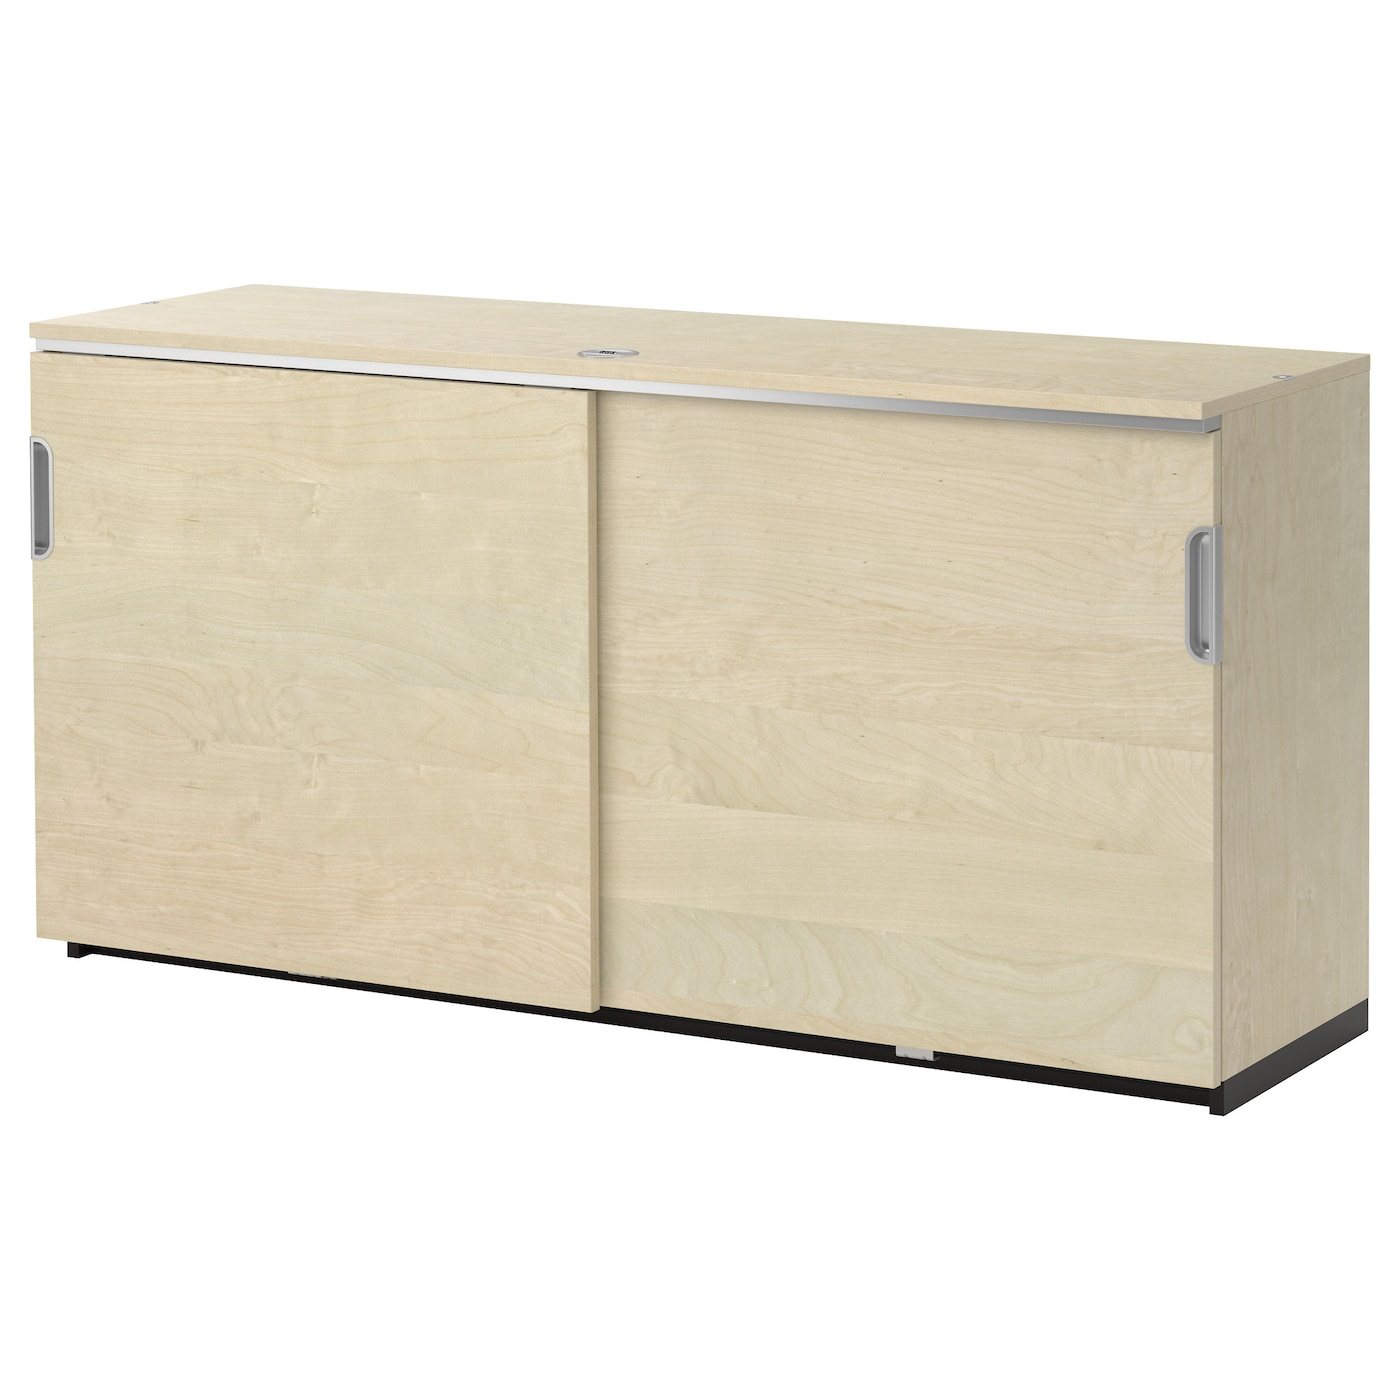 ikea office storage uk.  ikea ikea galant cabinet with sliding doors integrated damper makes close  silently and gently for ikea office storage uk o